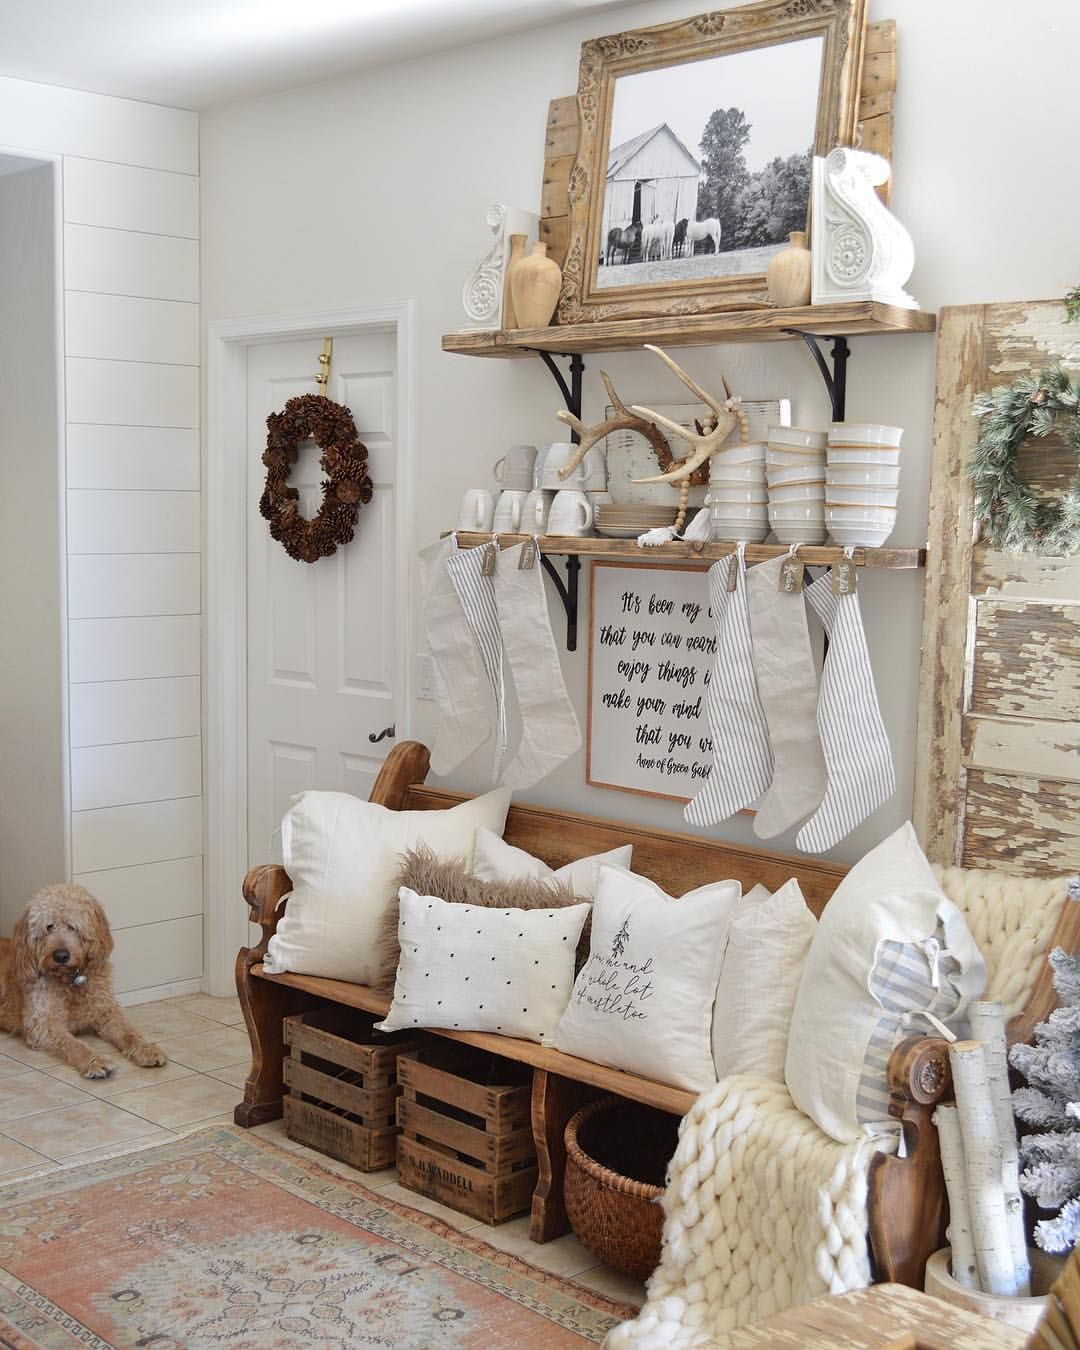 2 139 Likes 33 Comments Natalie Kolter Vintage Porch